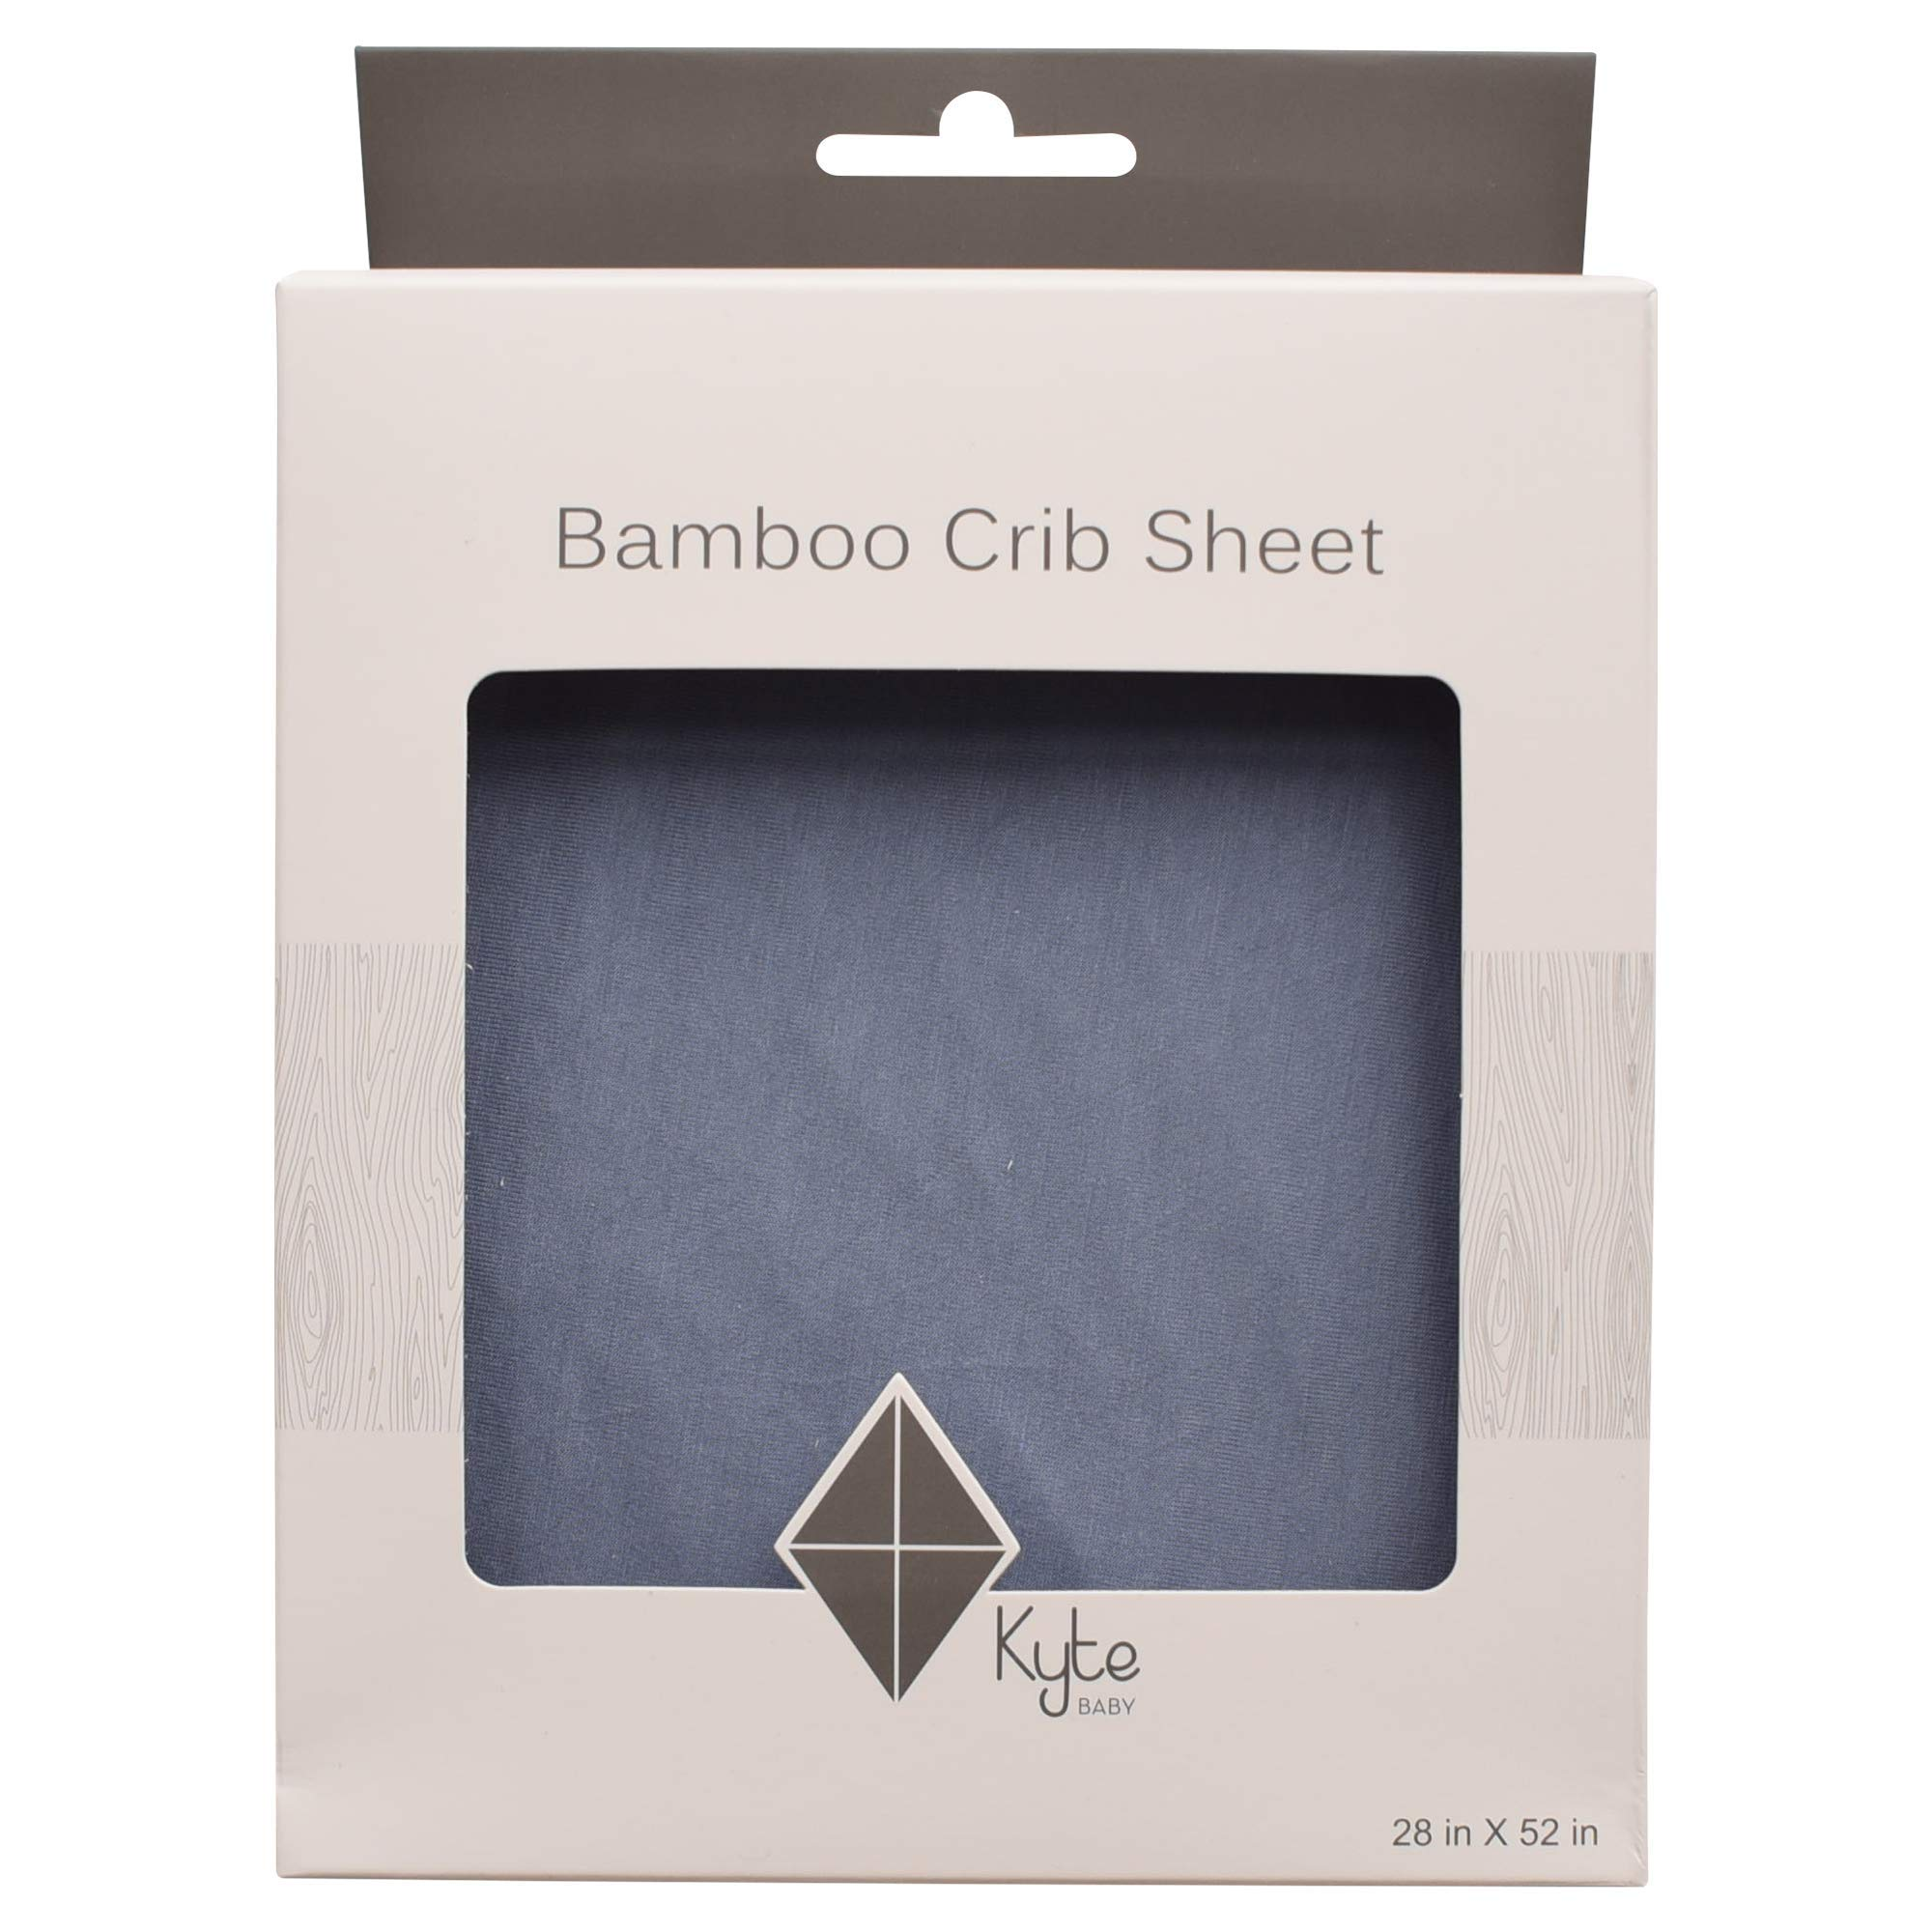 Kyte BABY Soft Crib Sheets Made from Bamboo Rayon Material (Slate) by KYTE BABY